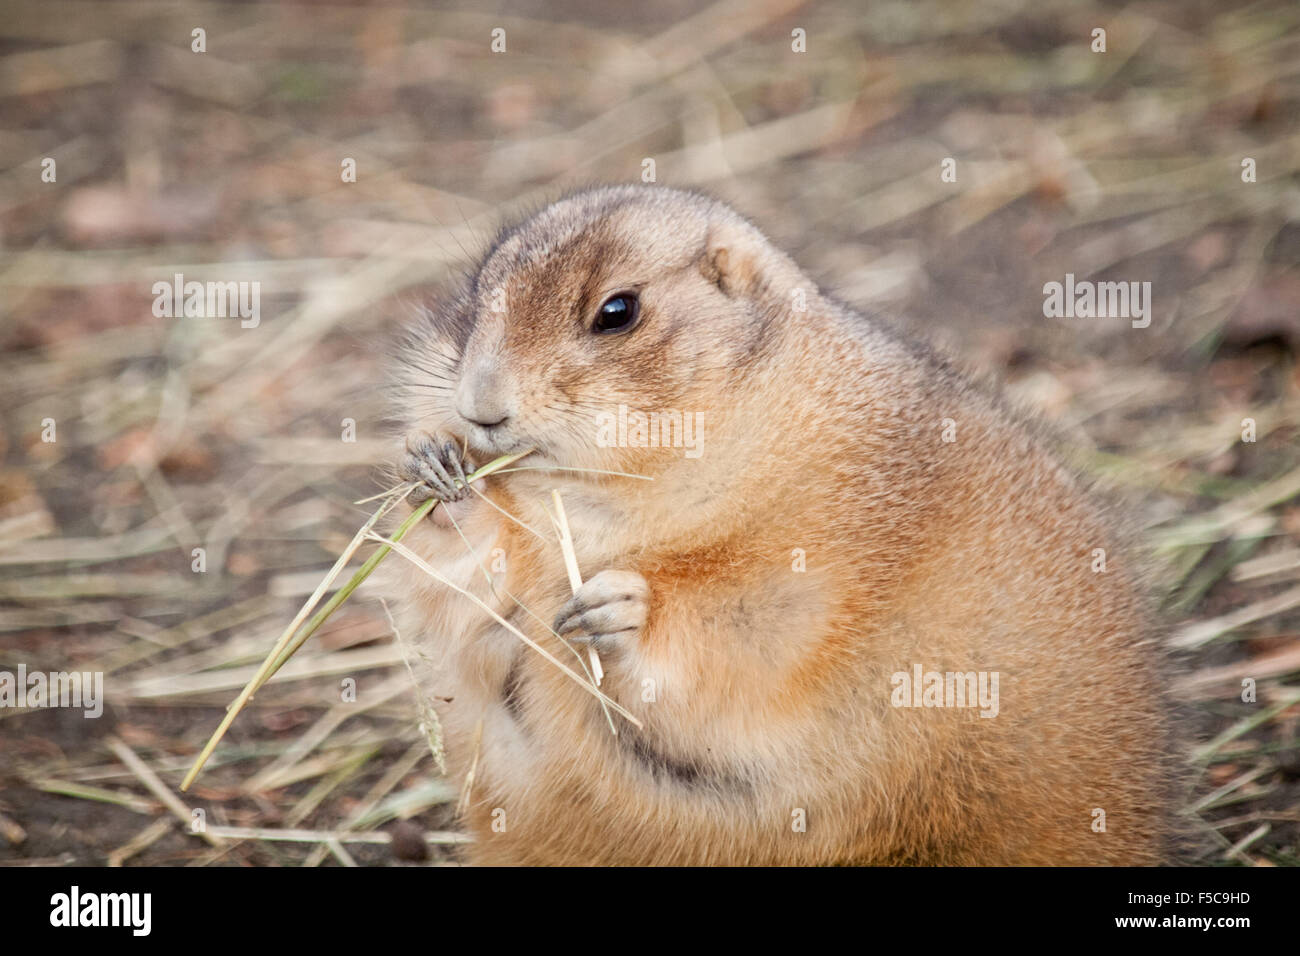 An Obese Black Tailed Prairie Dog Cynomys Ludovicianus Feeding On